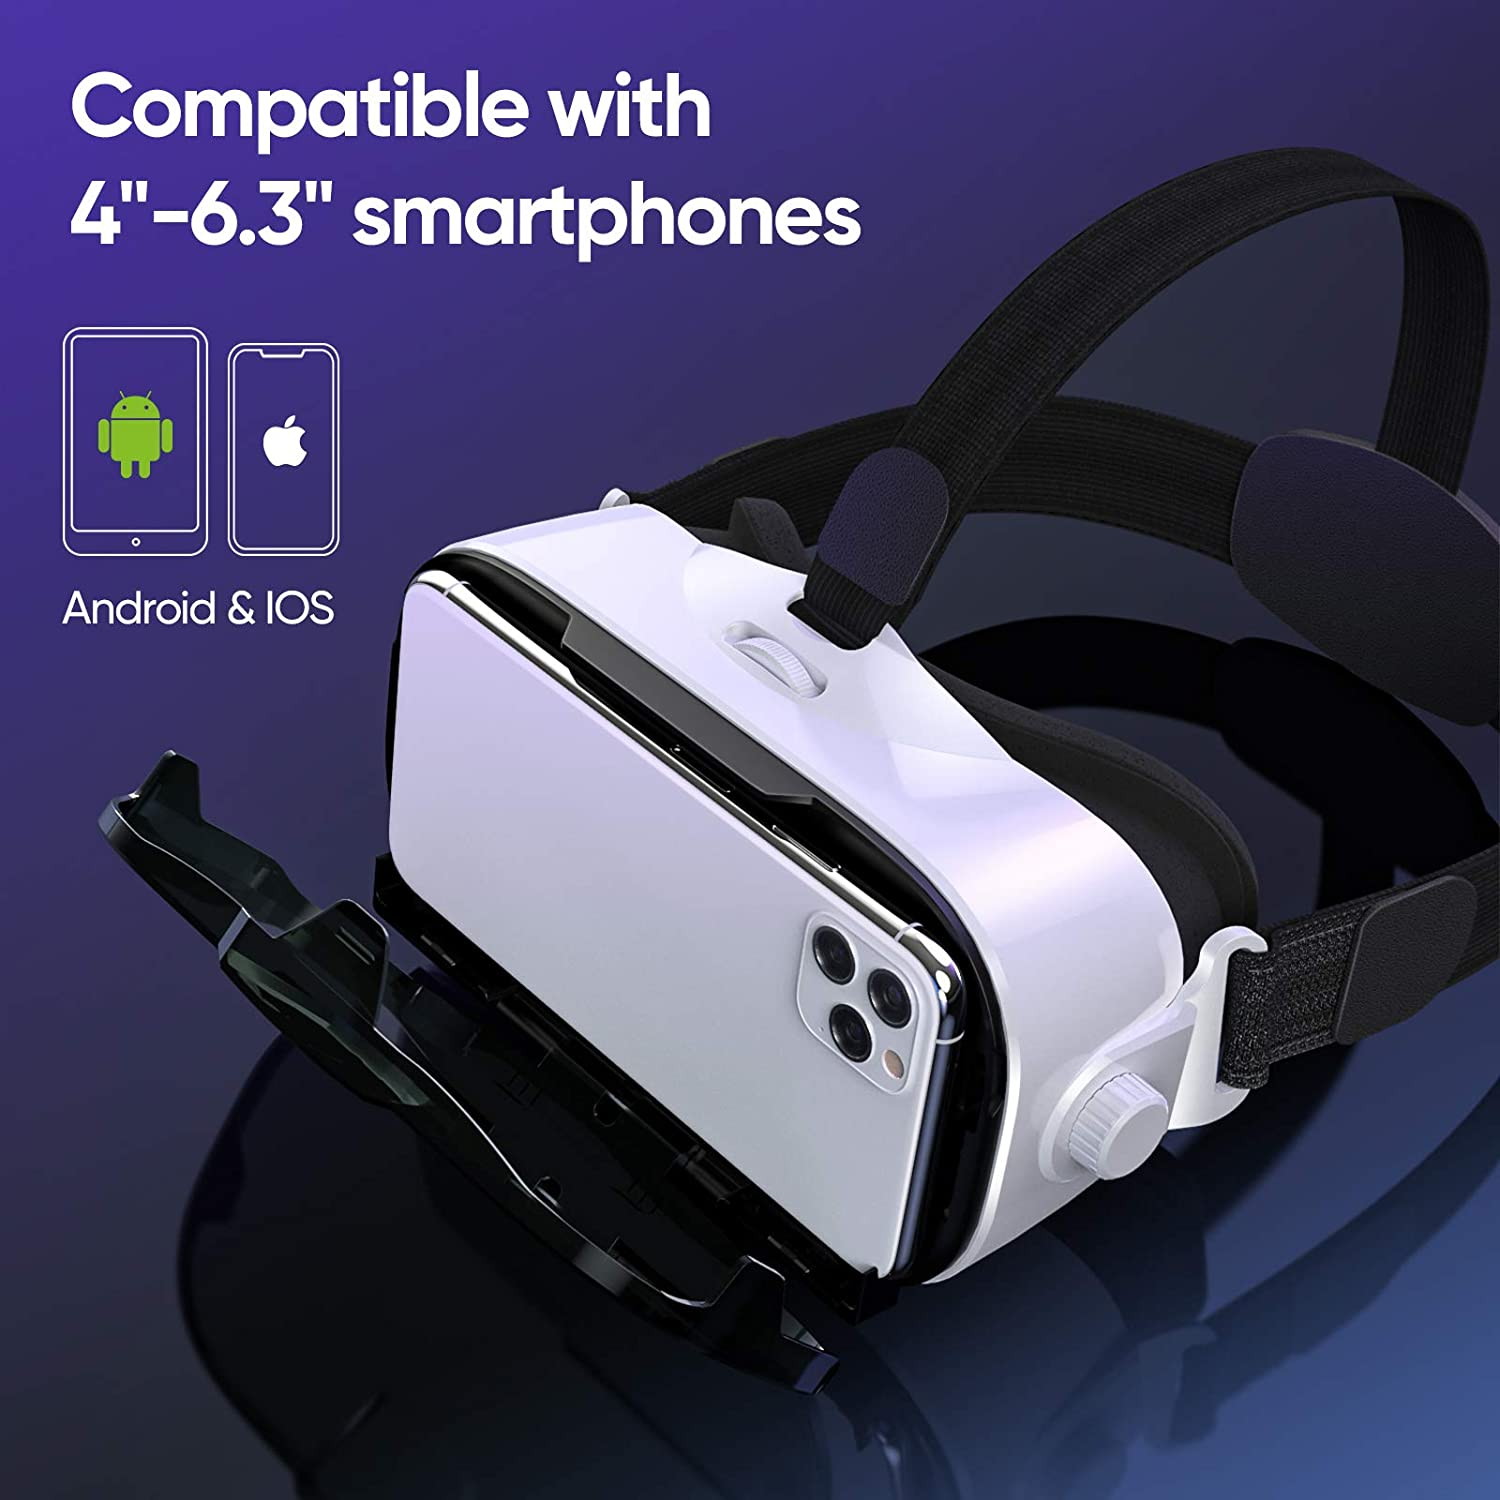 Vr Headsets 3d Vr Brille All In One Mit Hifi Kopfhorer 3d Virtual Reality Brille Touch Control Hdmi Mobil Kino Fur Pc Liao Vr Headset Elektronik Foto Impas Es